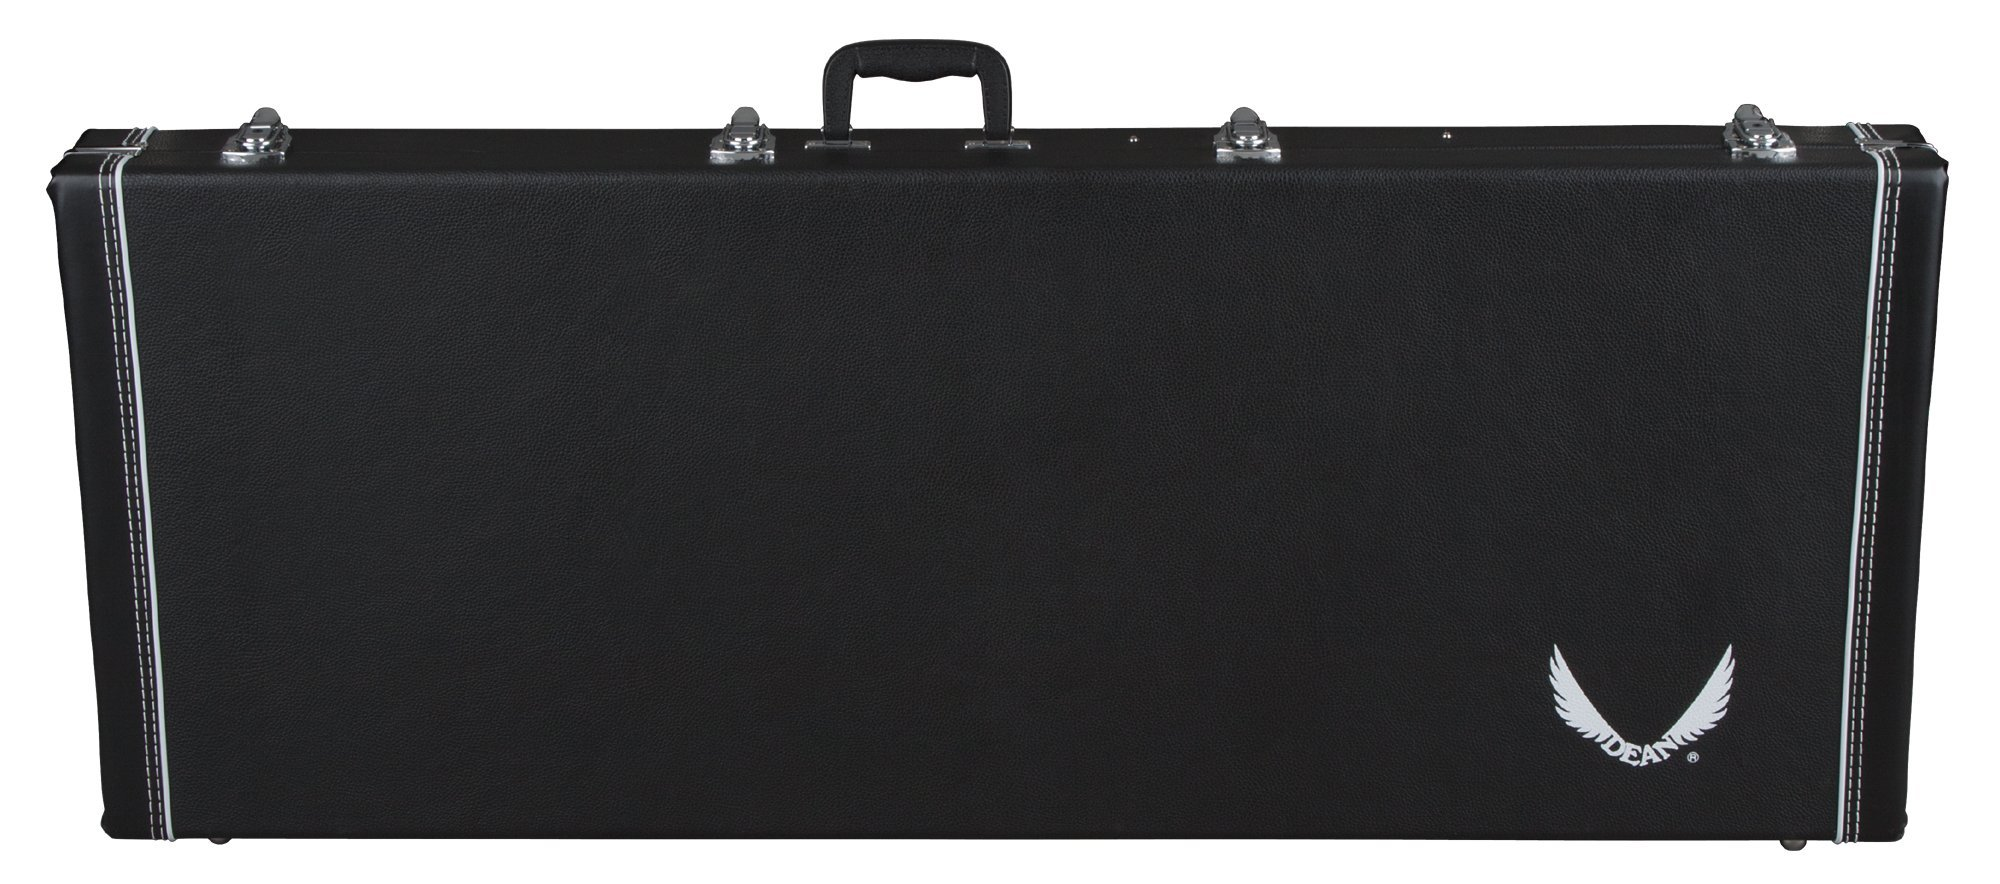 Dean DHS V Deluxe Hard Shell Case for V Model Electric Guitars